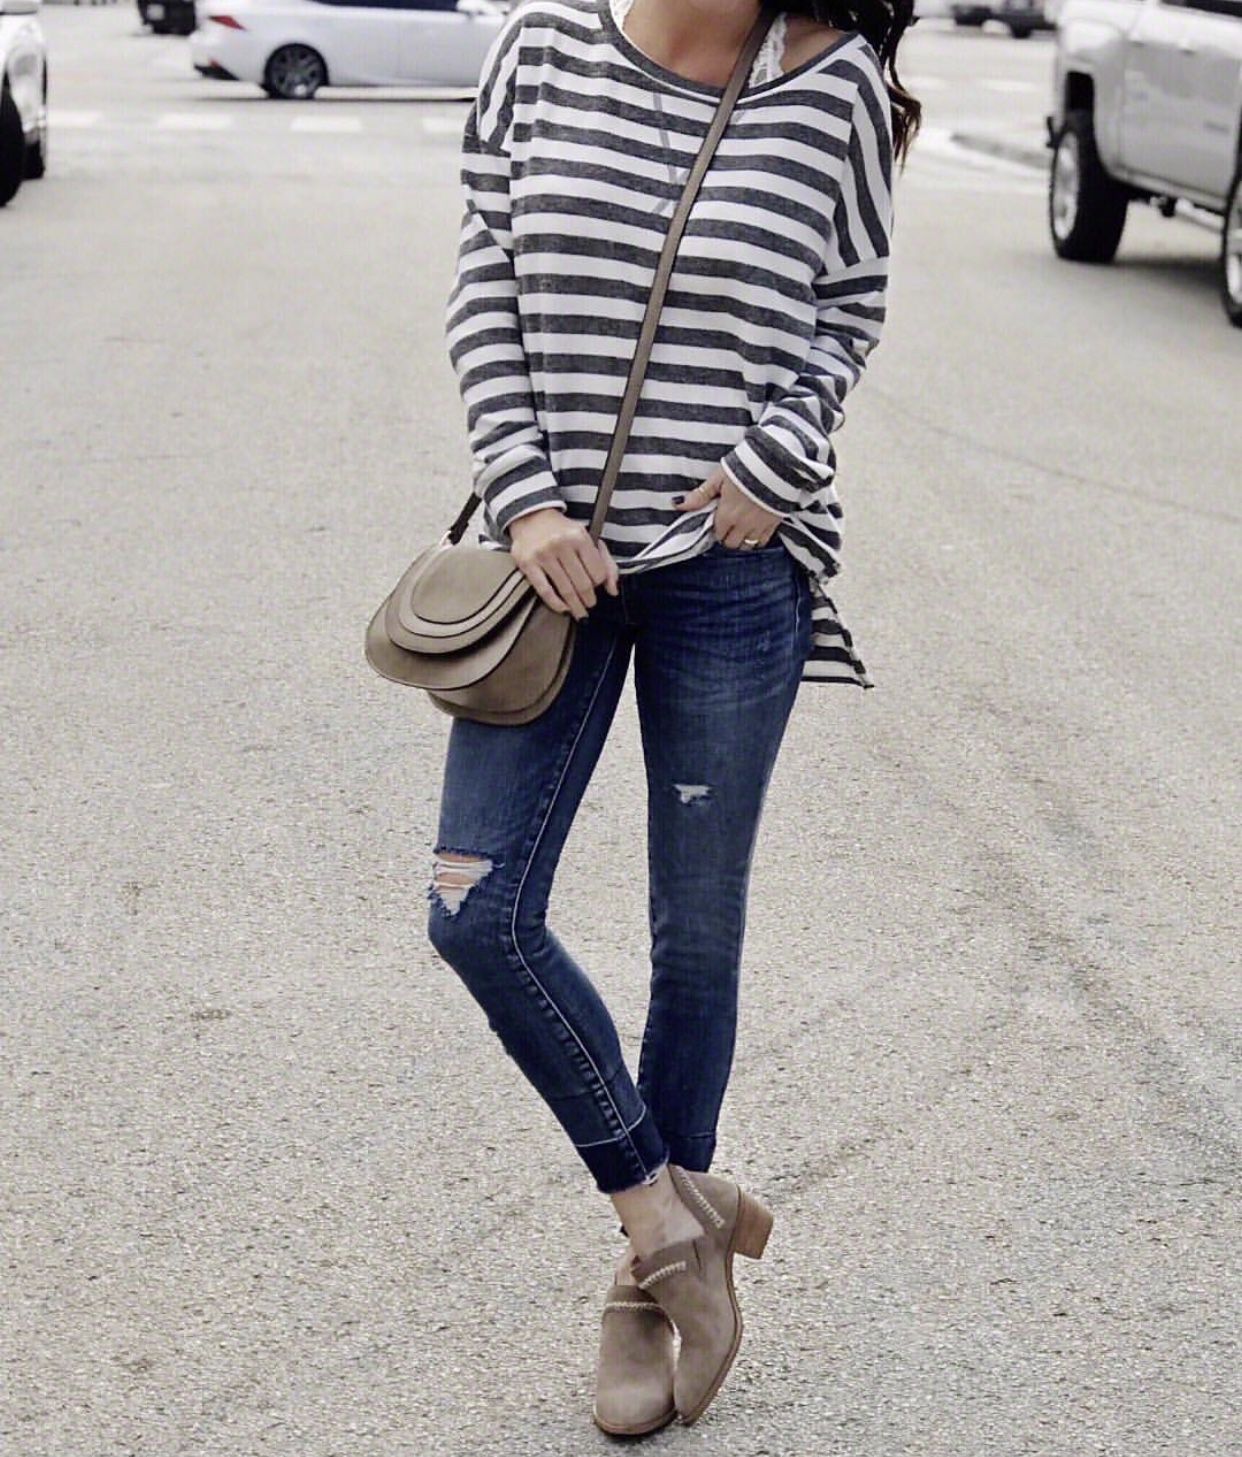 Jeans, Booties, and oversized sweater